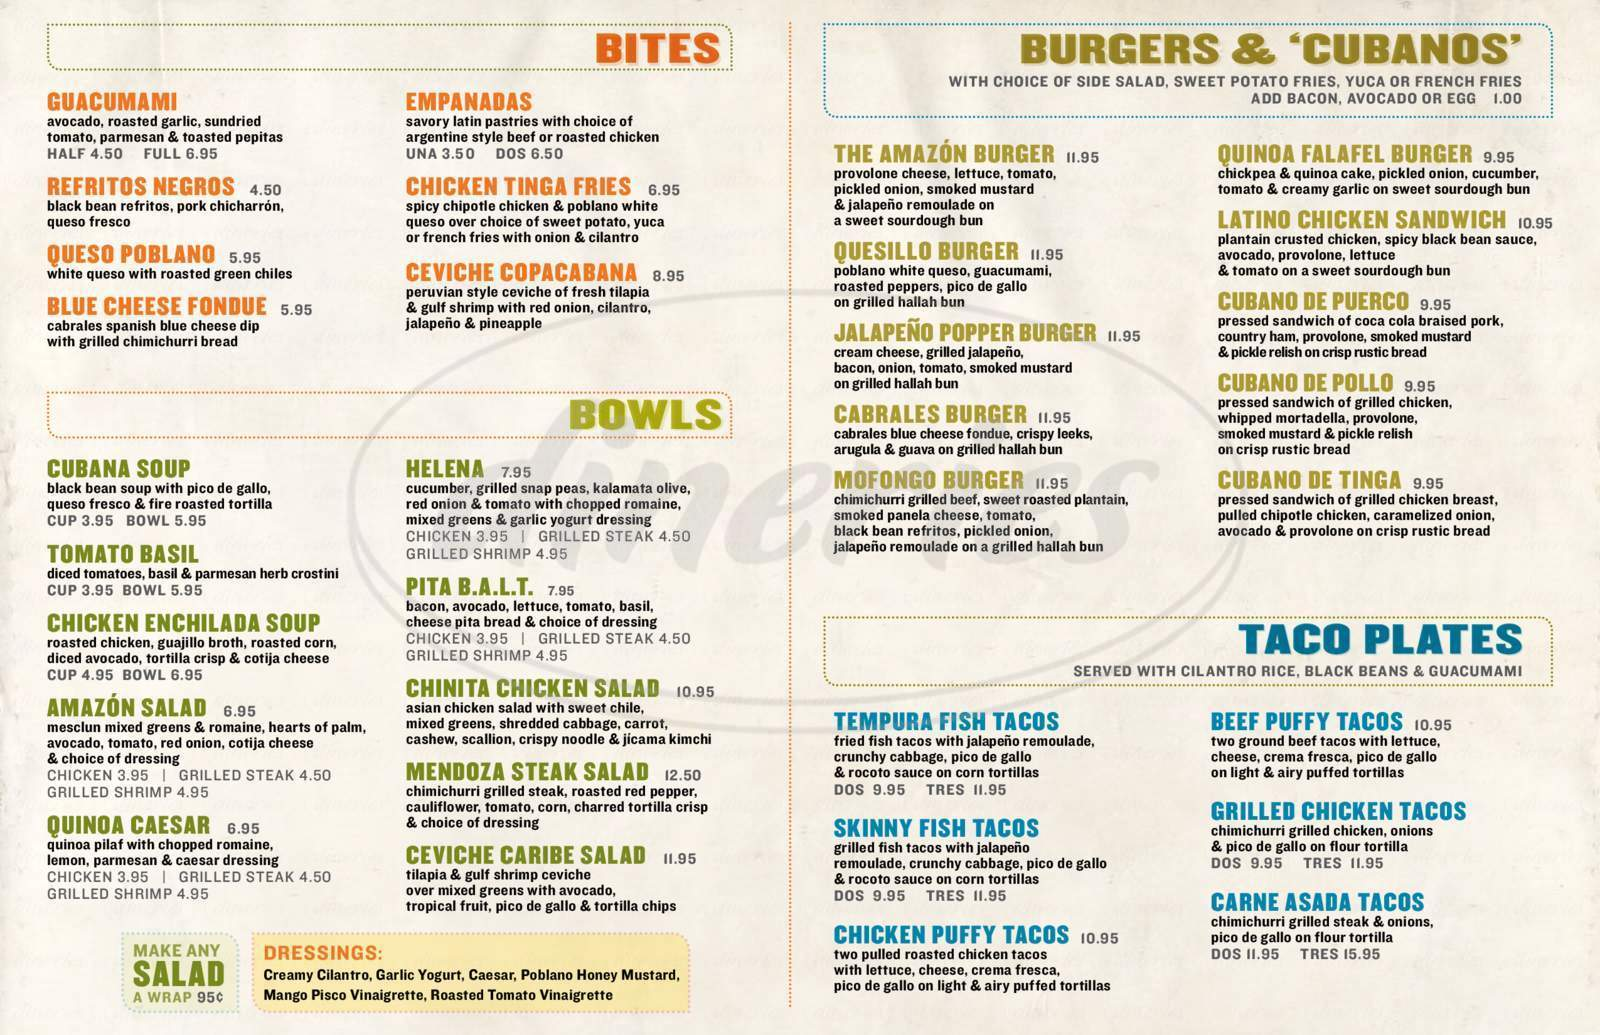 menu for Amazon Grill